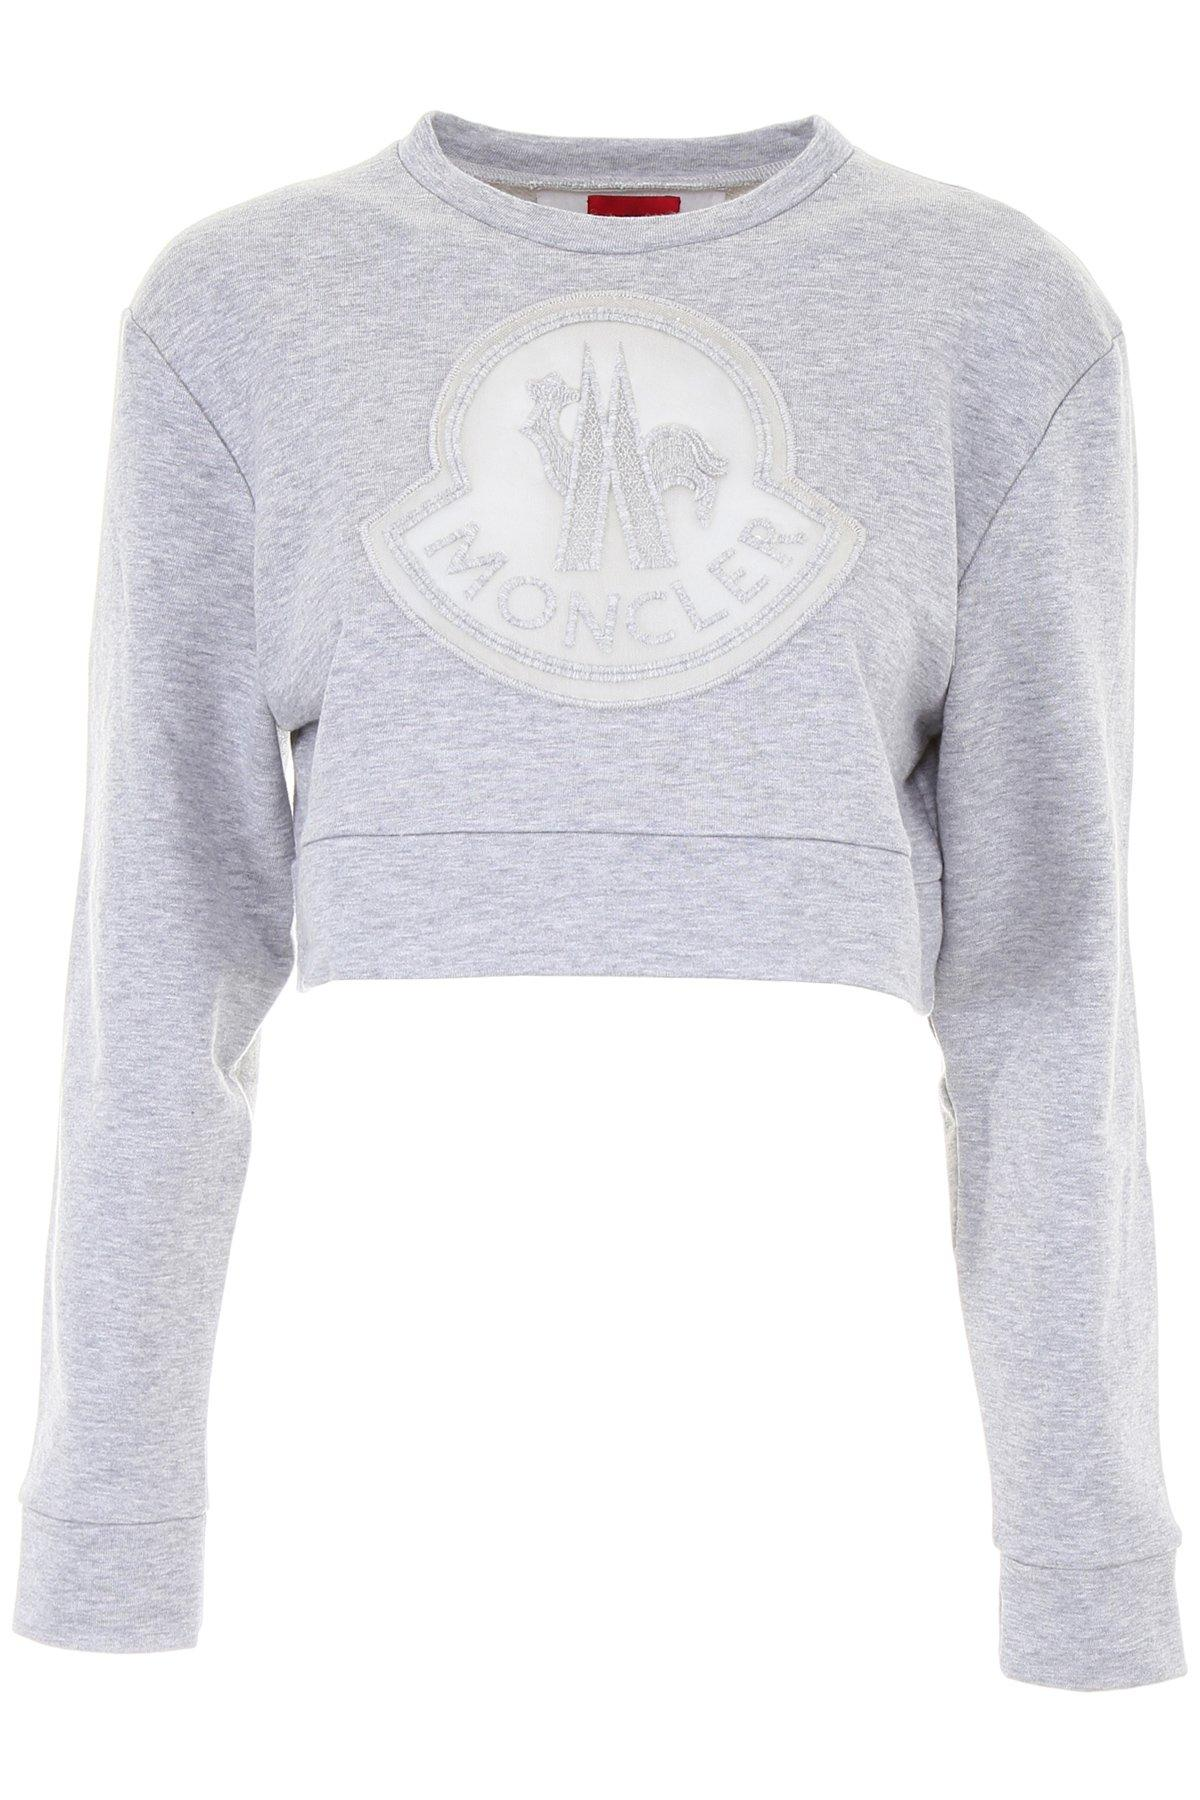 a8b6db3ab950 Moncler Gamme Rouge Cropped Sweater In Grey | ModeSens